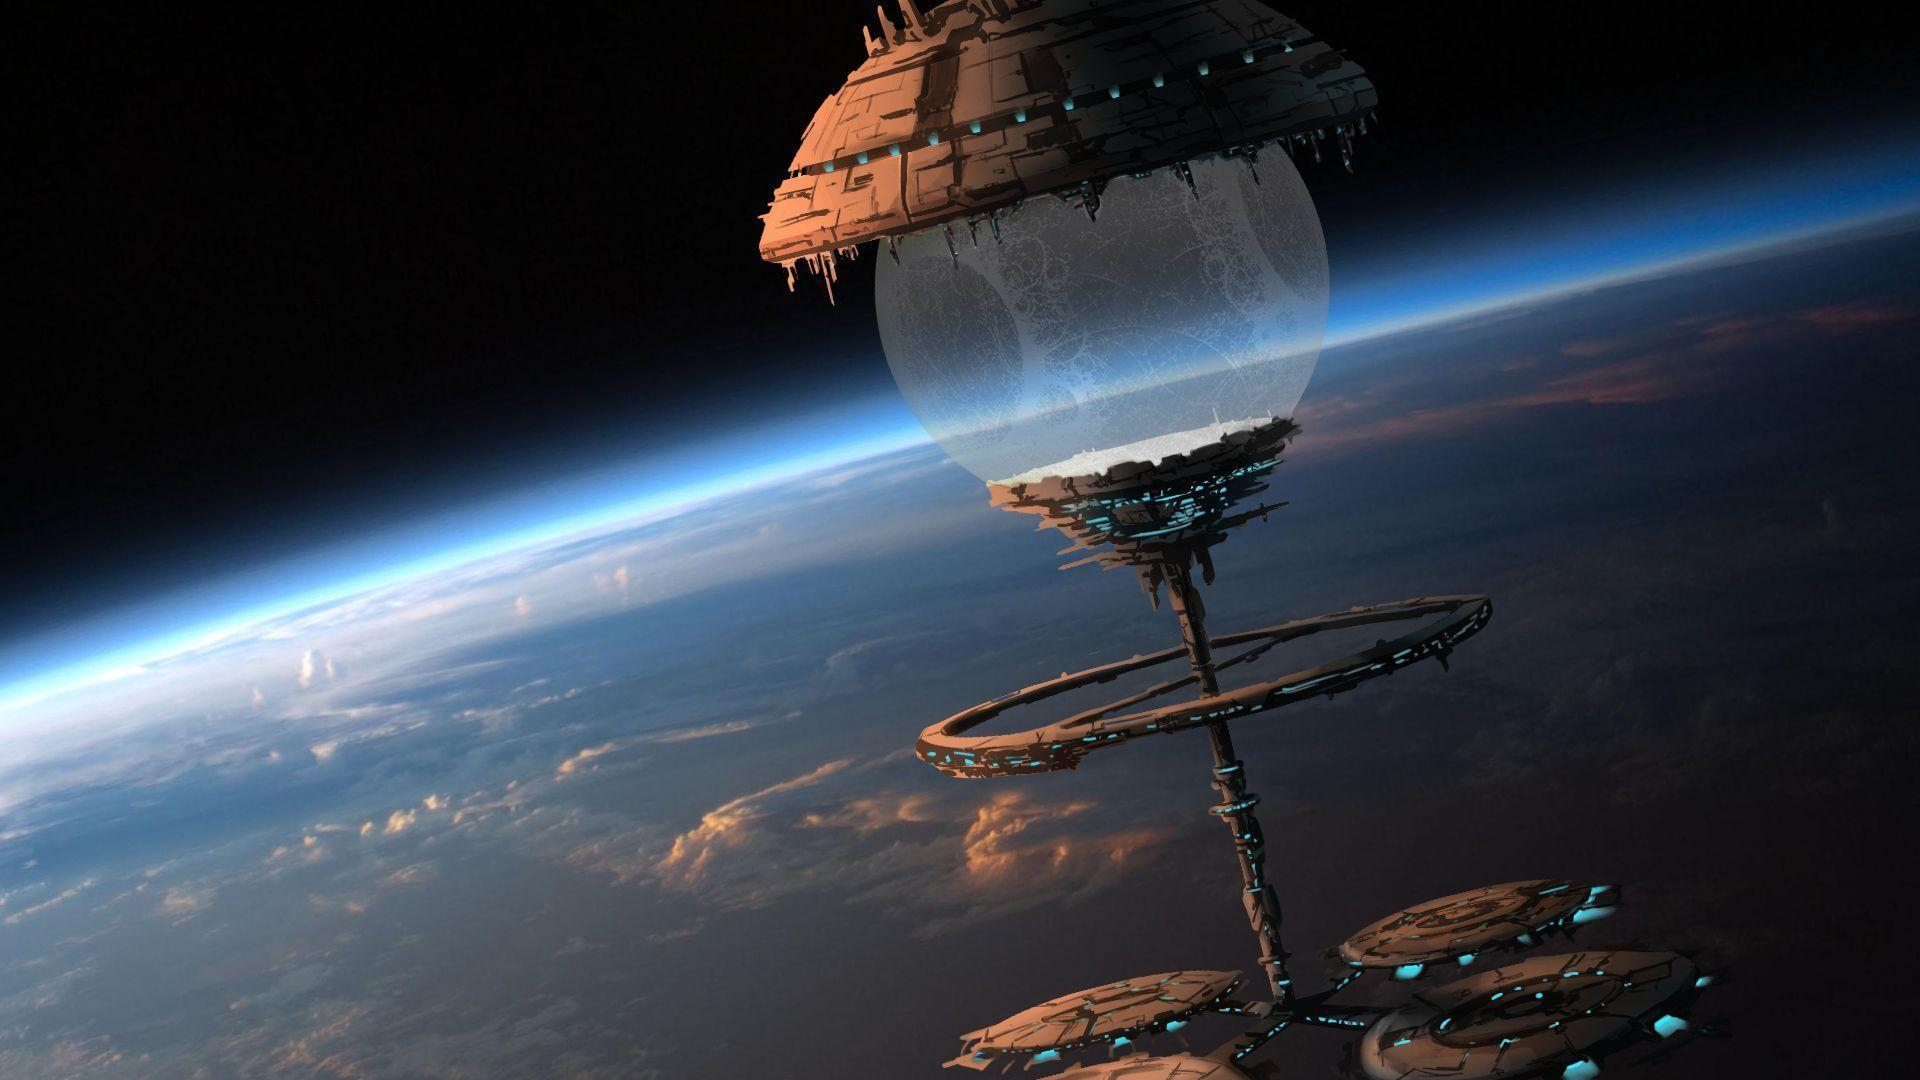 Space fantasy wallpapers wallpaper cave - Space station wallpaper ...